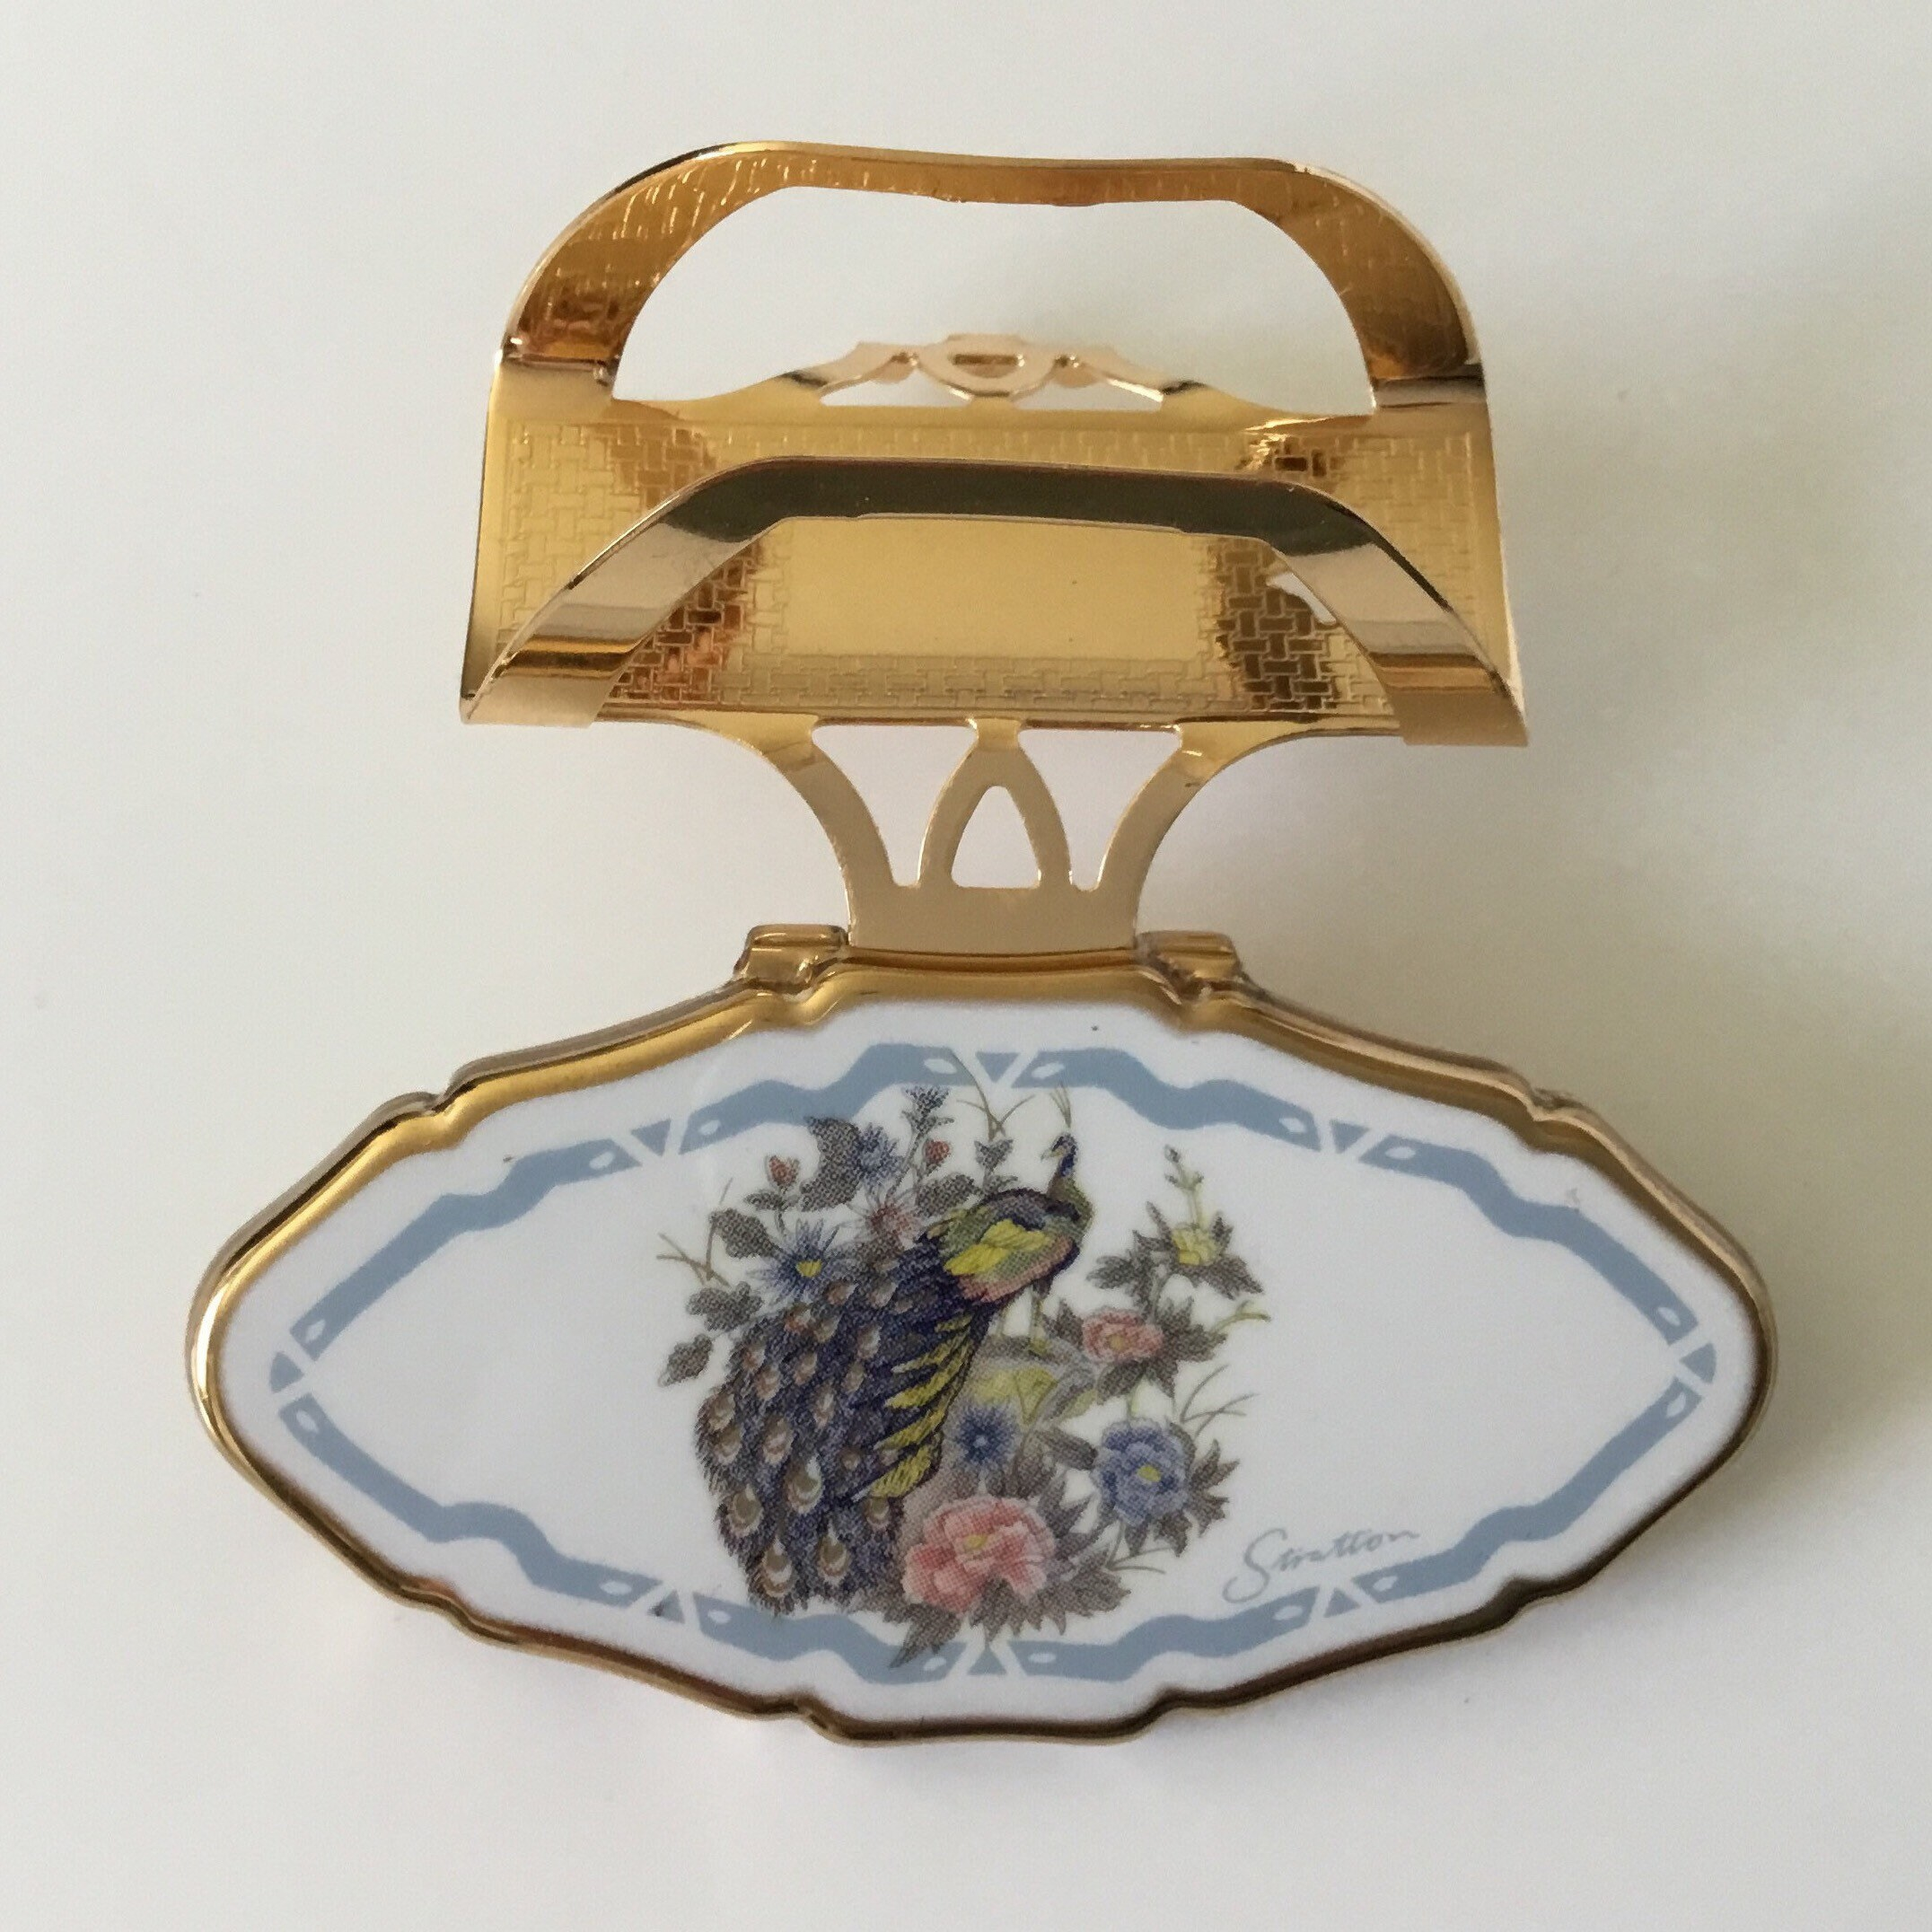 Vintage Stratton Lipview Lipstick Holder And Mirror, With A Peacock